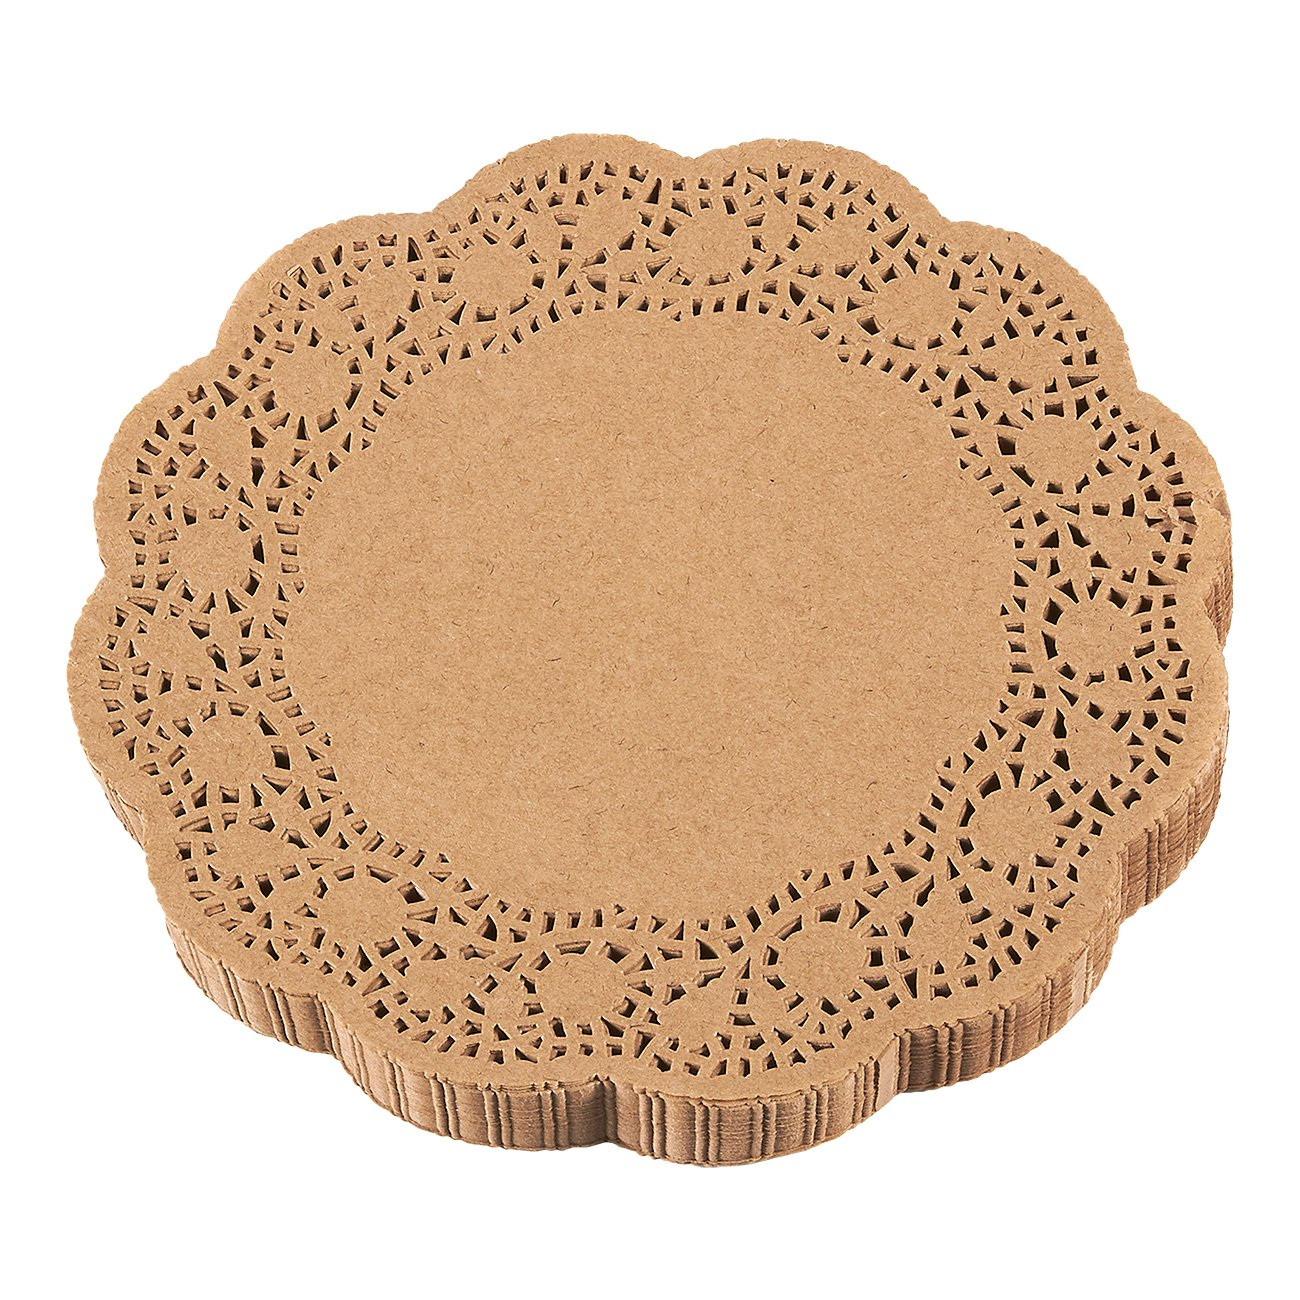 Paper Doilies – 250-Pack Round Lace Placemats for Cakes, Desserts, Baked Treat Display, Ideal for Weddings, Formal Event Decoration, Tableware Decor, Brown - 10 Inches in Diameter